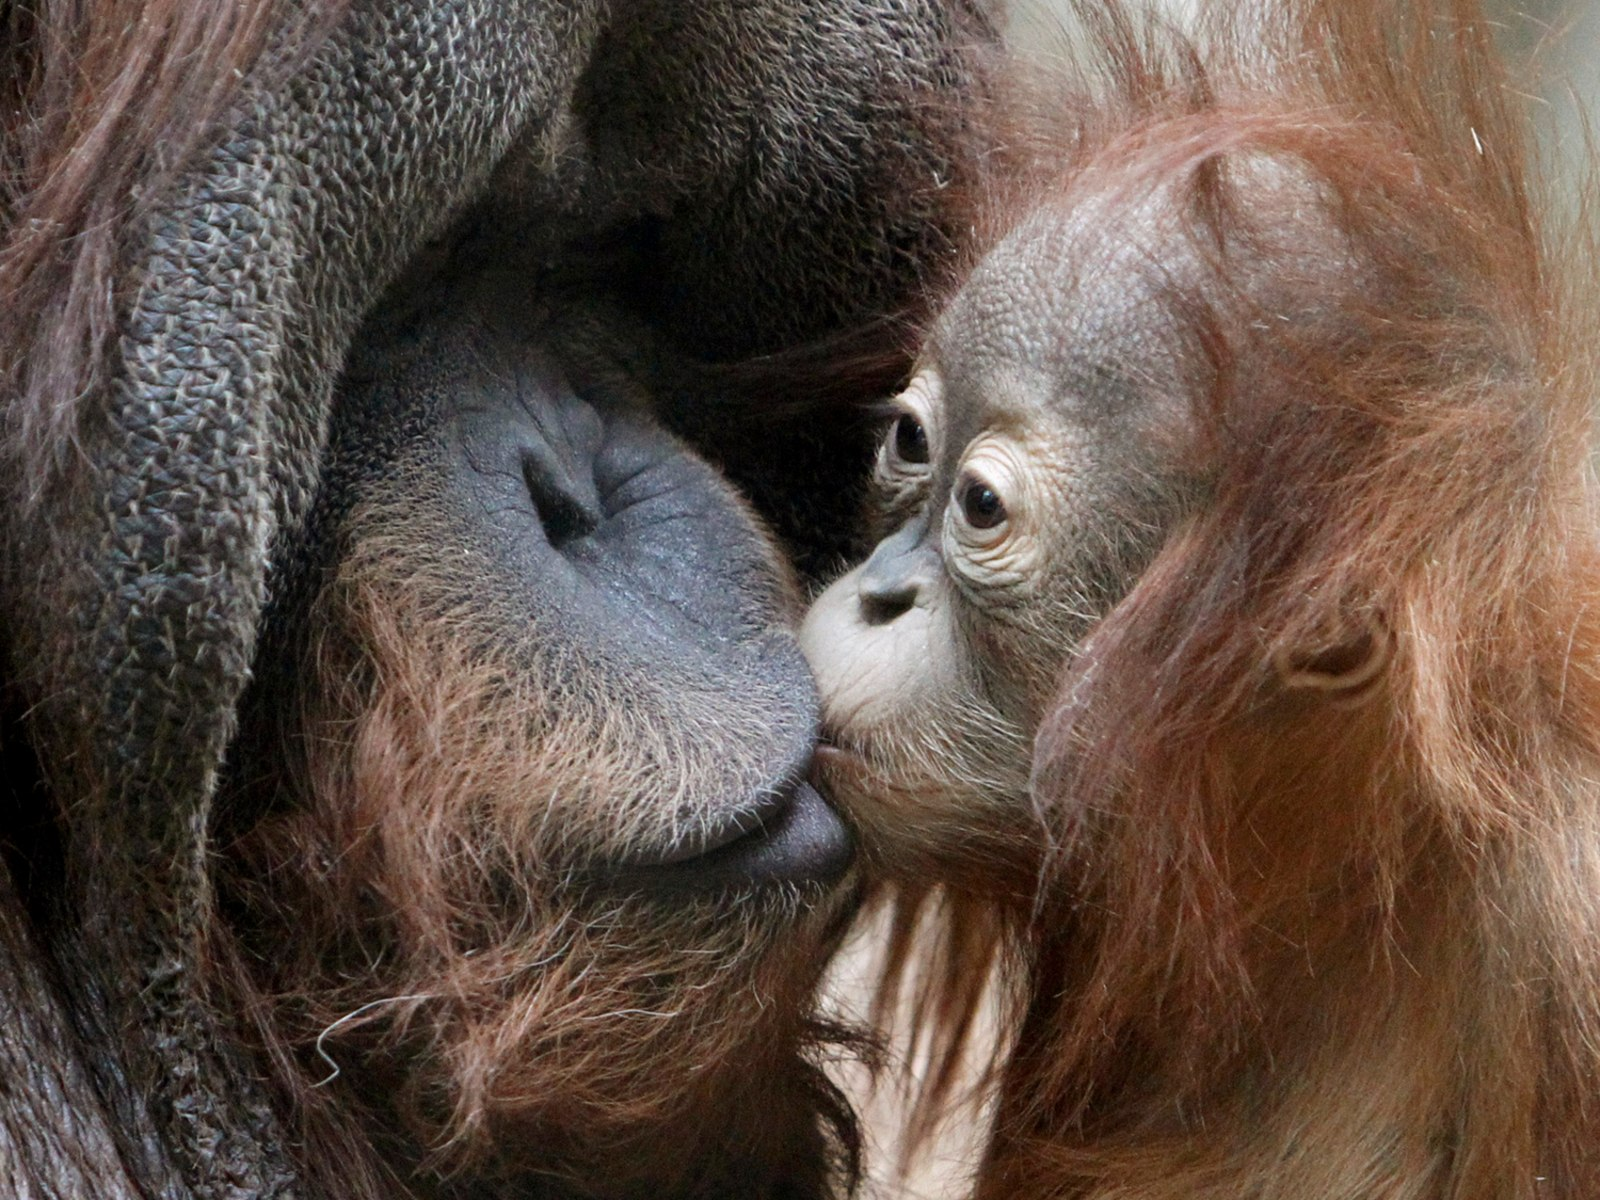 Image: Male Sumatran orangutan spends time with its cub inside their enclosure at city zoo in Moscow